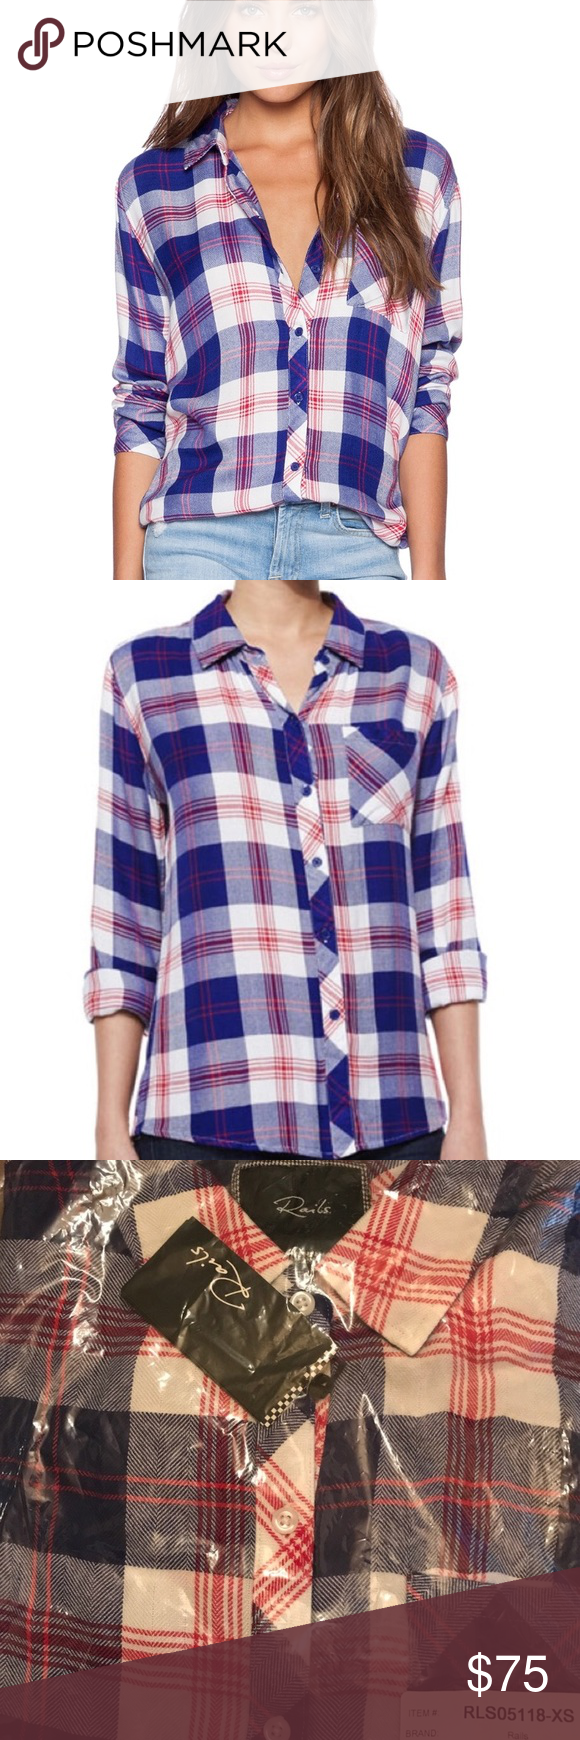 Flannel shirt party  Rails Hunter Flannel in White Blue Cherry  Flannels Conditioning